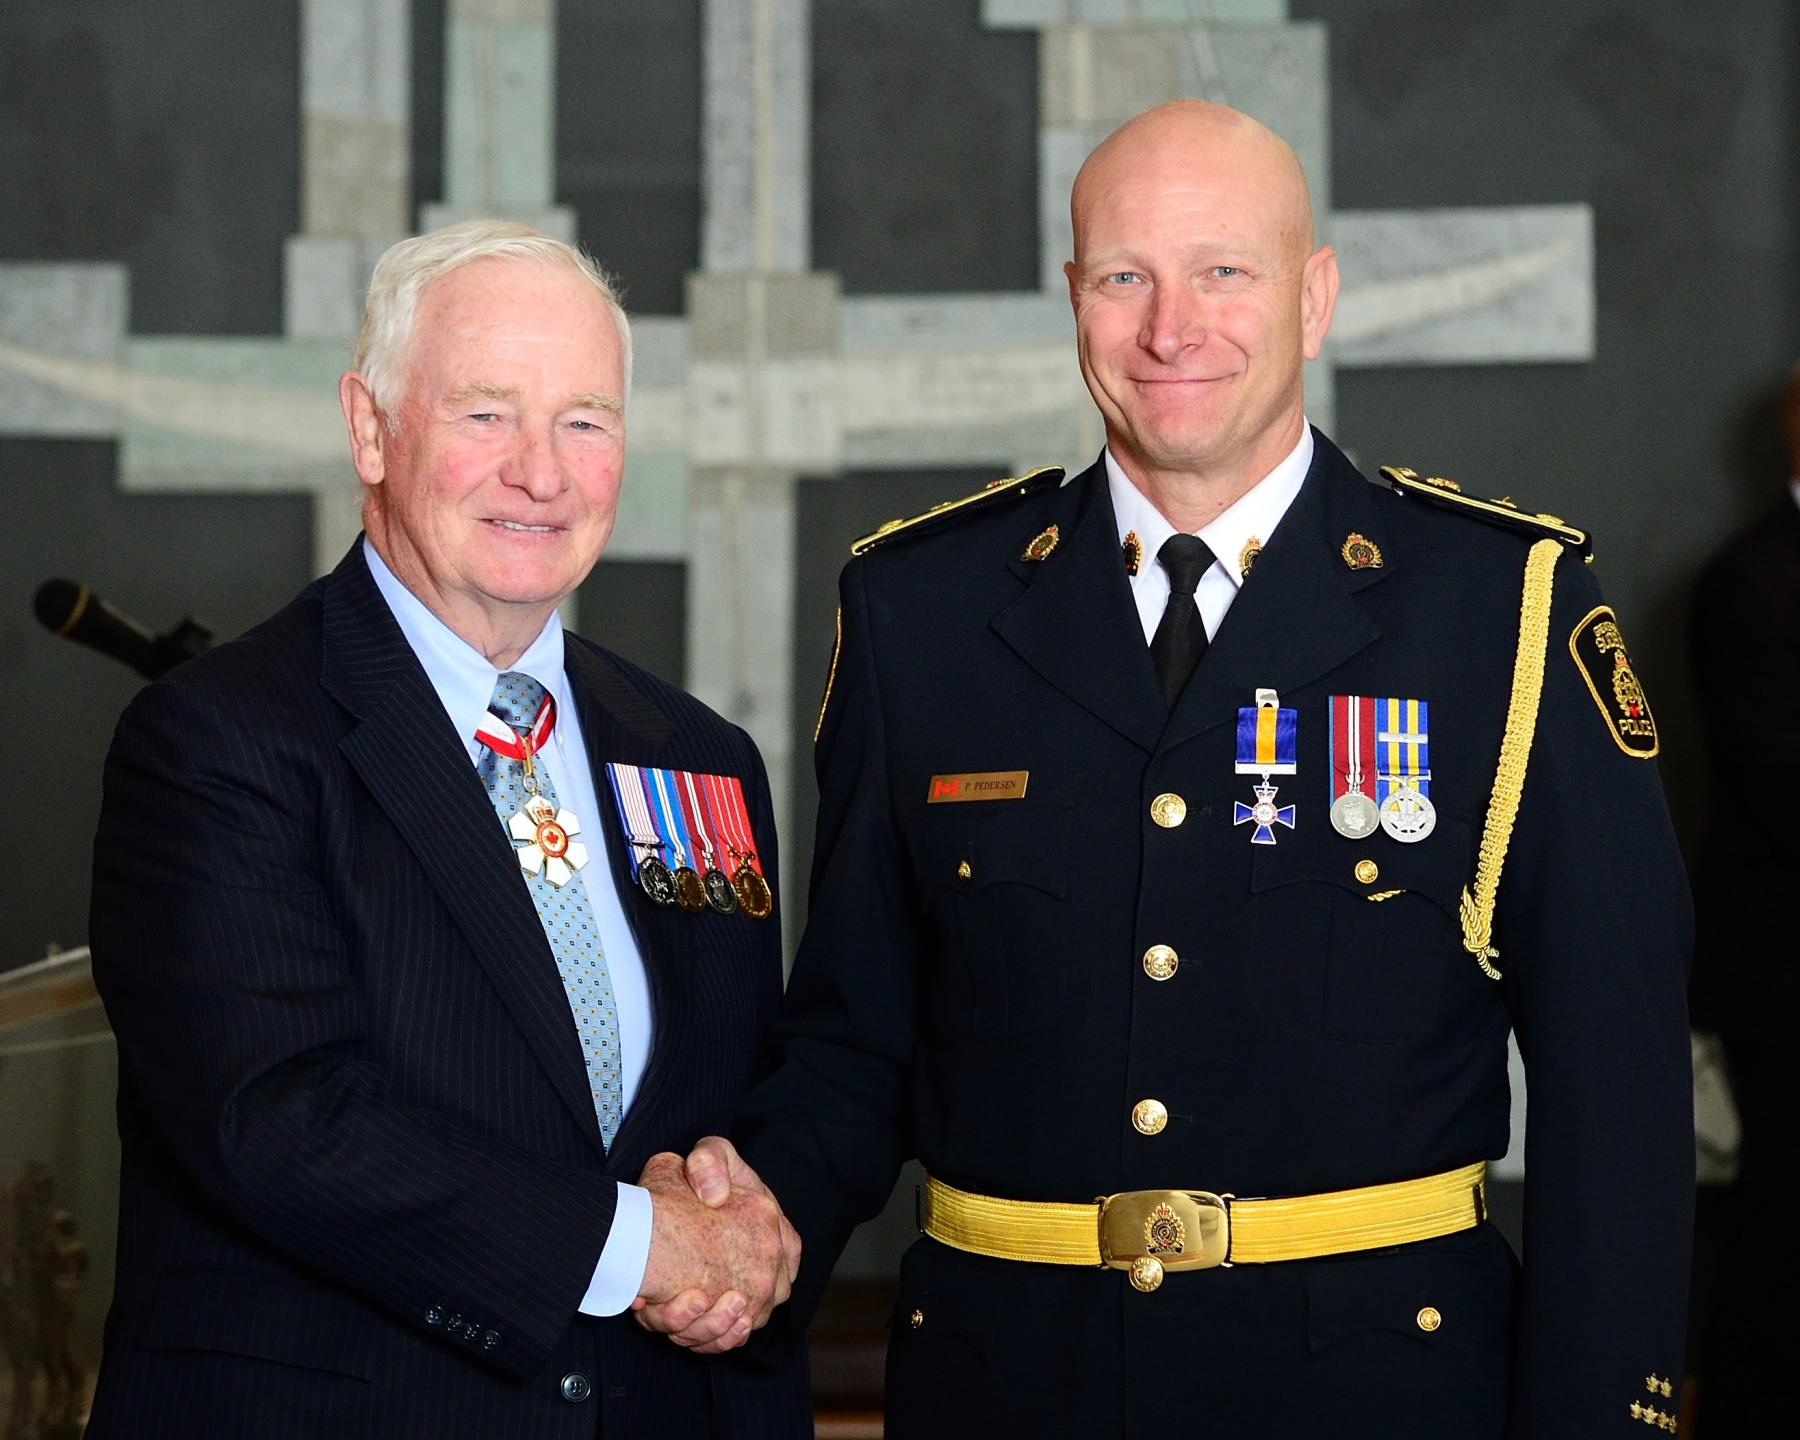 The Governor General presented the Order at the Member level to Chief Paul E. Pedersen, M.O.M., Greater Sudbury Police Service, Ontario.